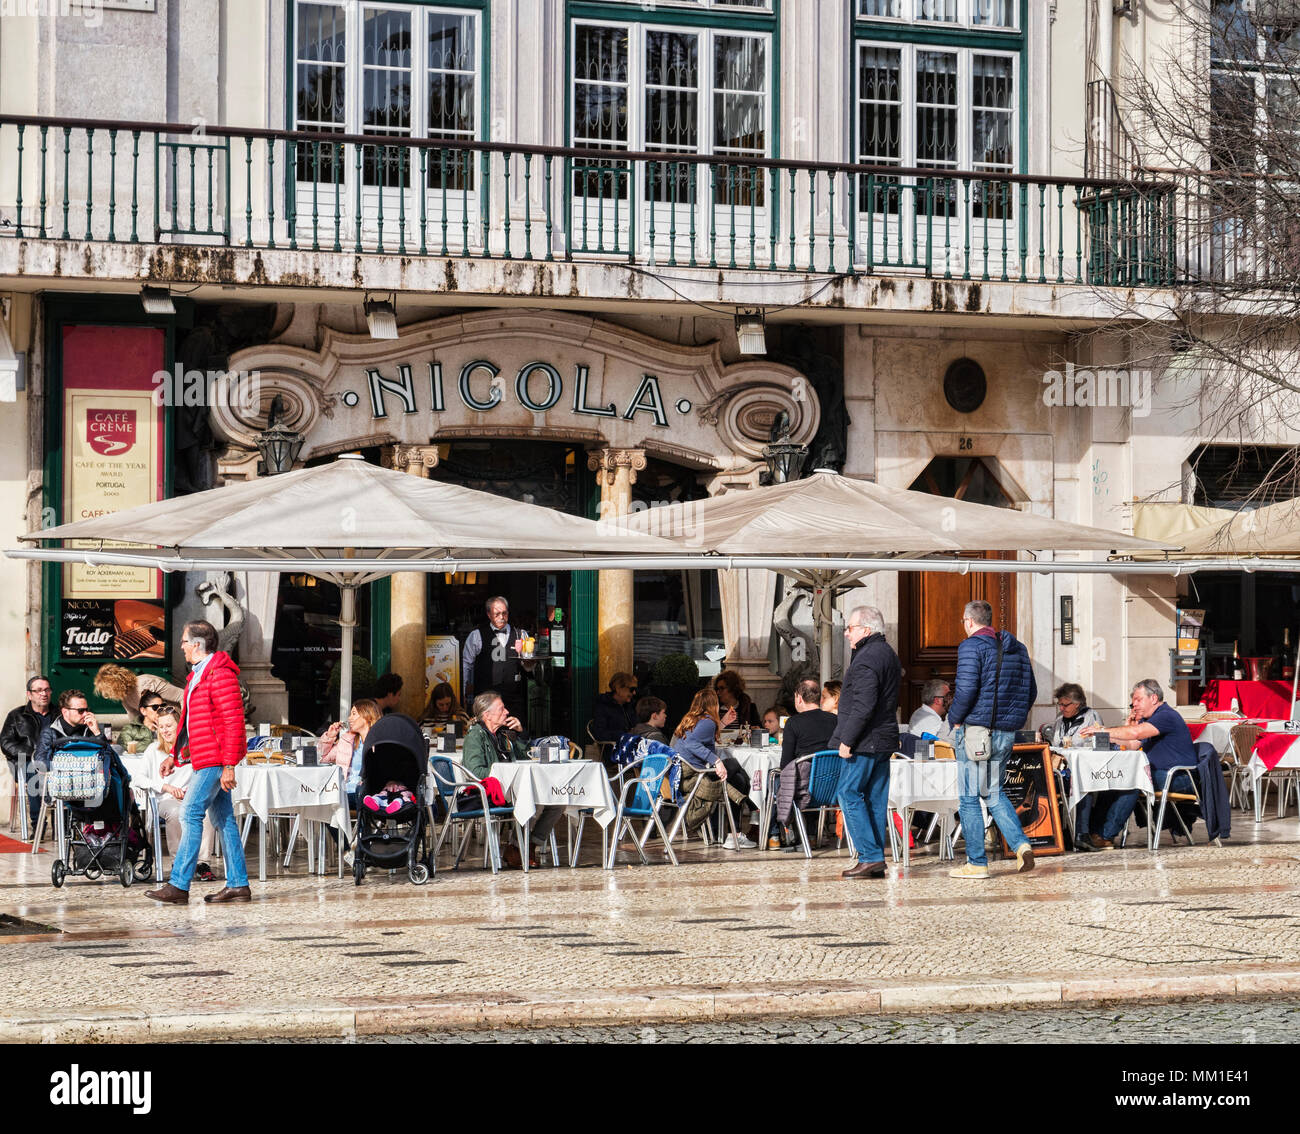 27 February 2018: Lisbon, Portugal - Cafe Nicola, Praca dom Pedro, with customers sitting outside in the winter sunshine, the art deco facade has been - Stock Image